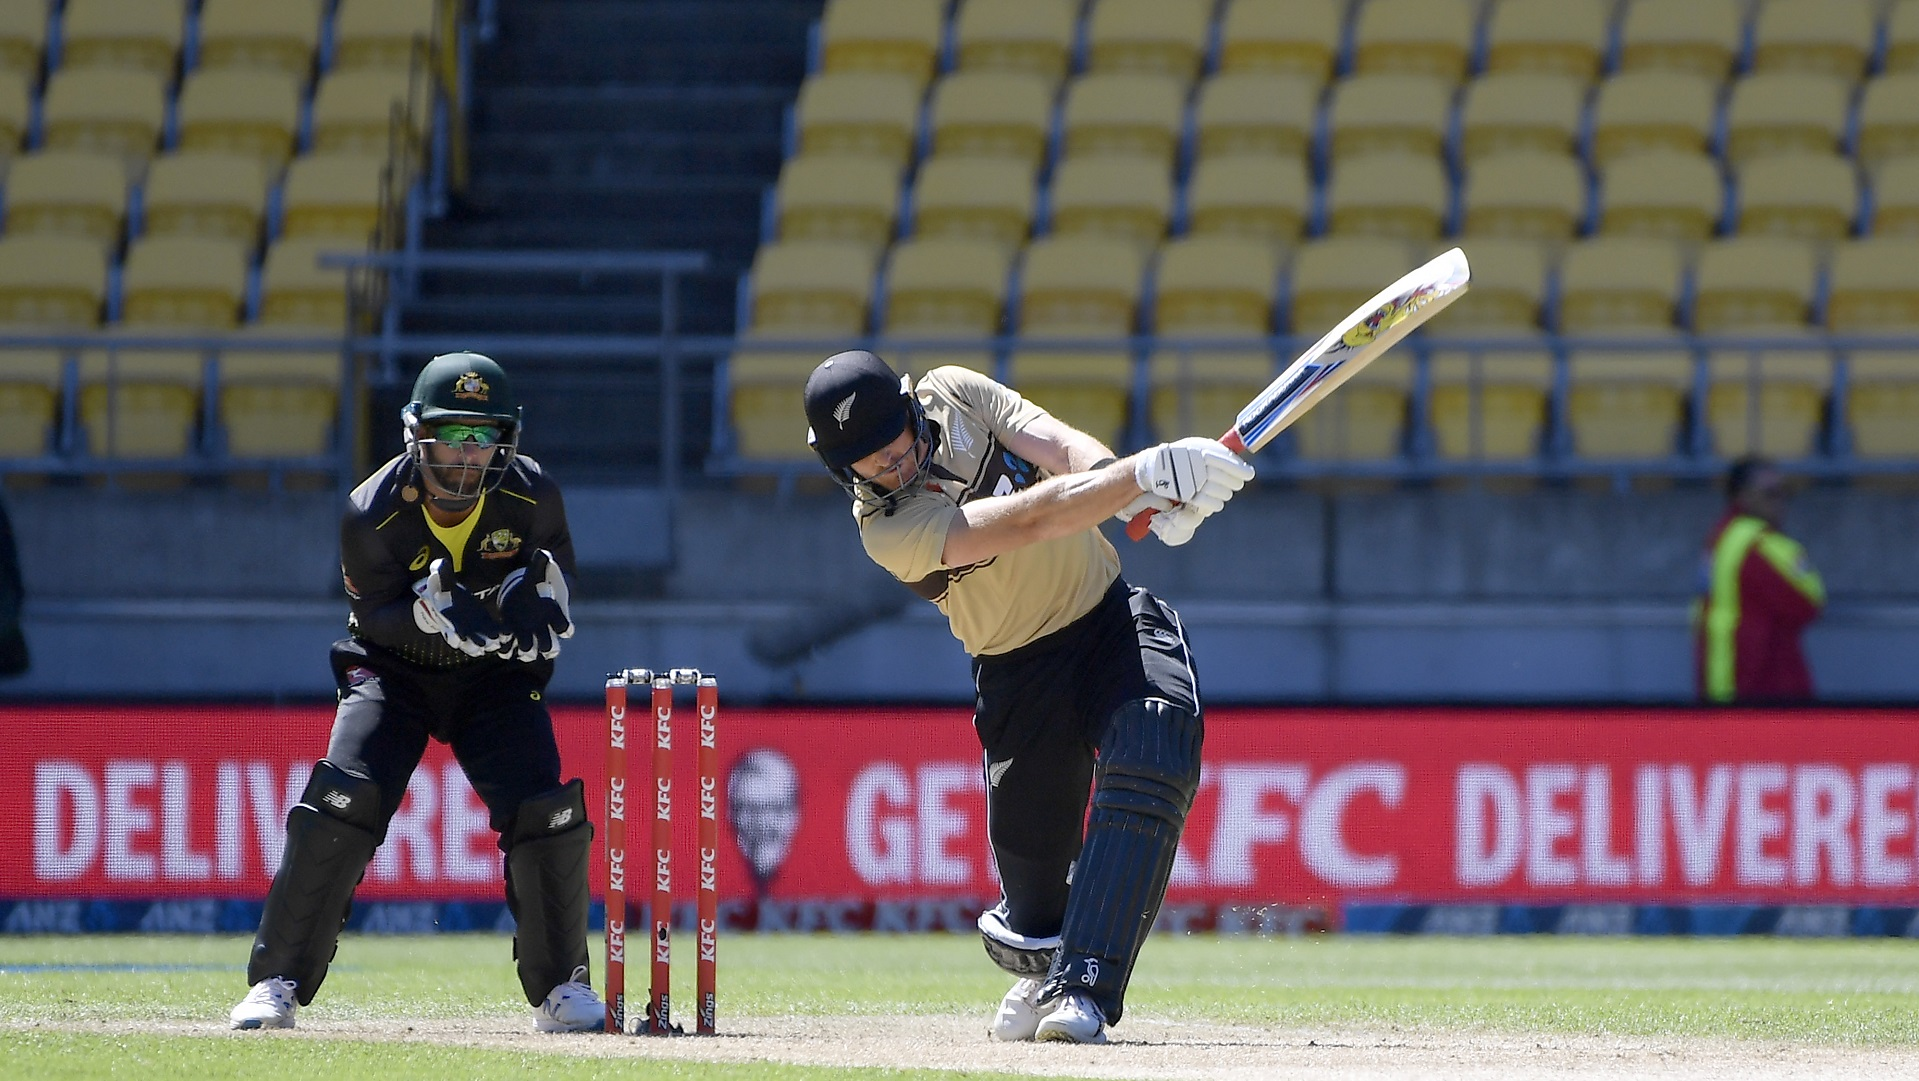 Martin Guptill and Ish Sodhi starred as New Zealand clinched a thrilling Twenty20 series triumph with a seven-wicket win.